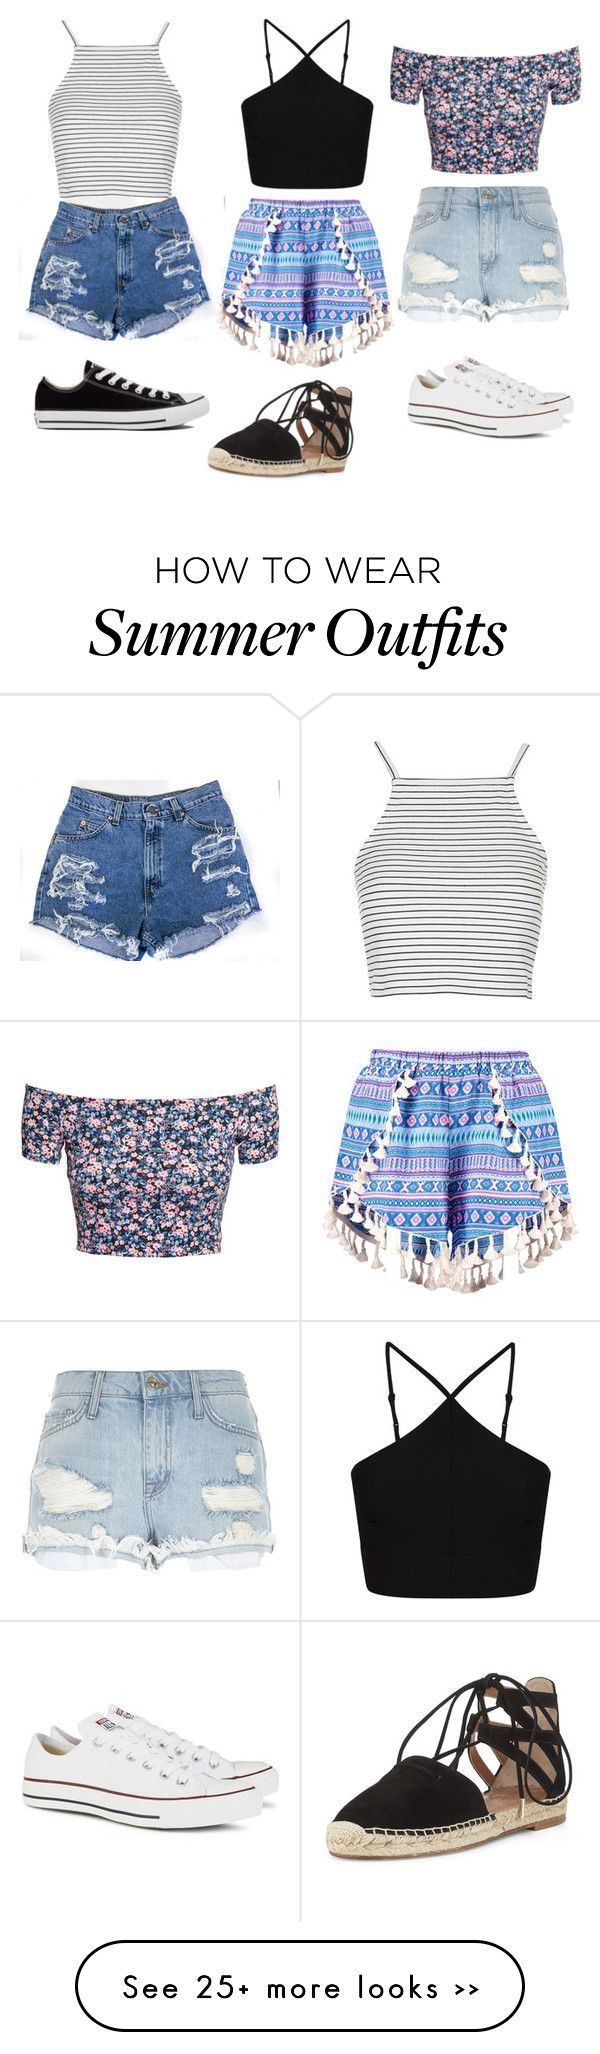 """Summer outfits "" by skyscraper1432 on Polyvore"